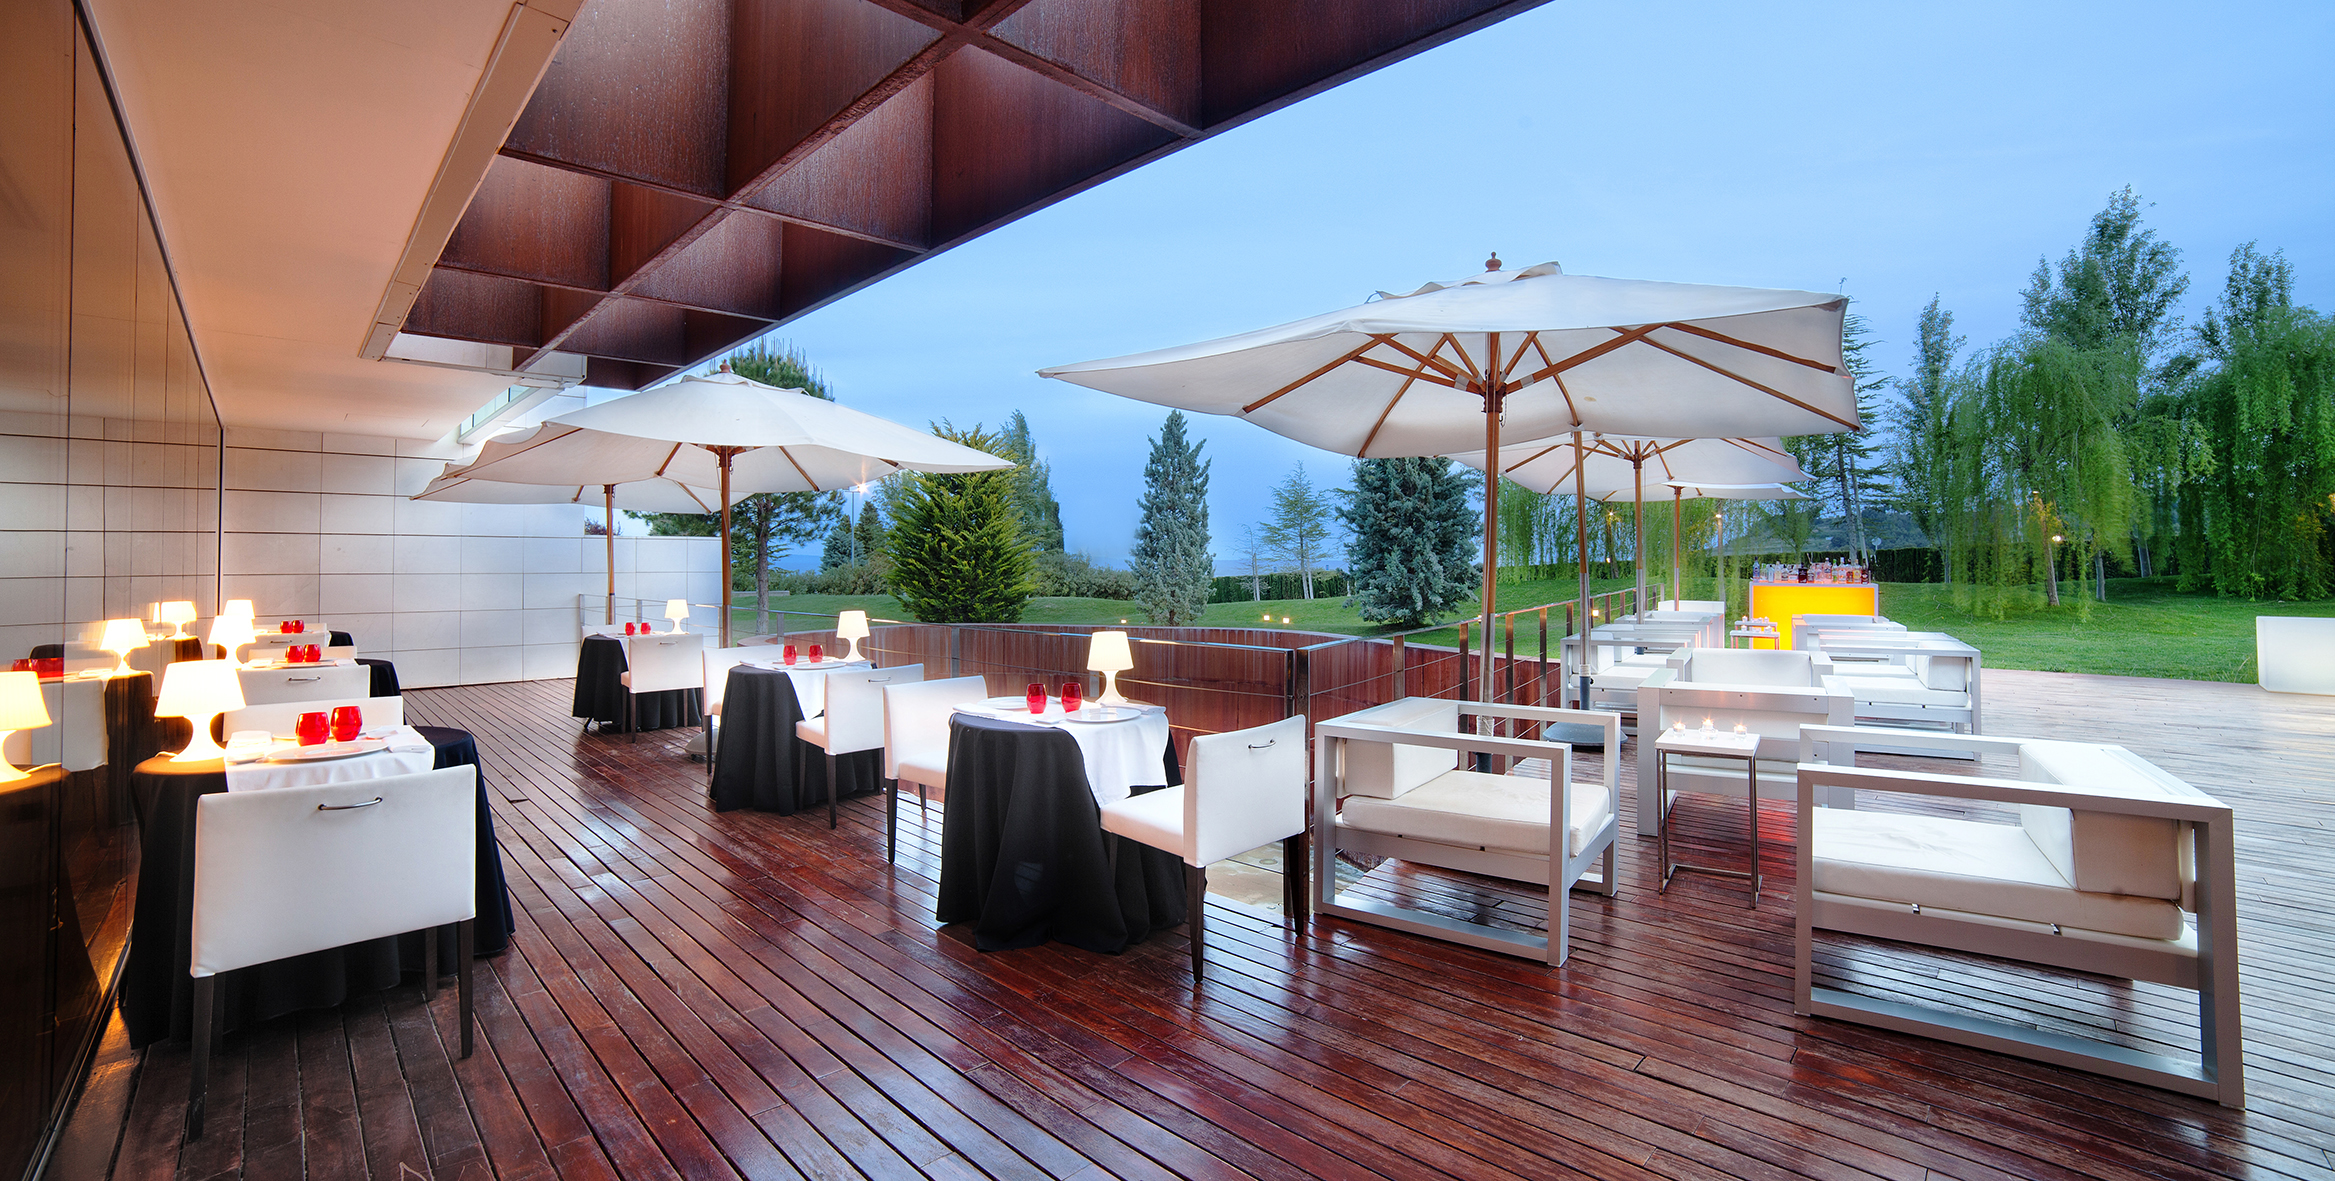 Terraza de verano y chill out copia for Terraza chill out